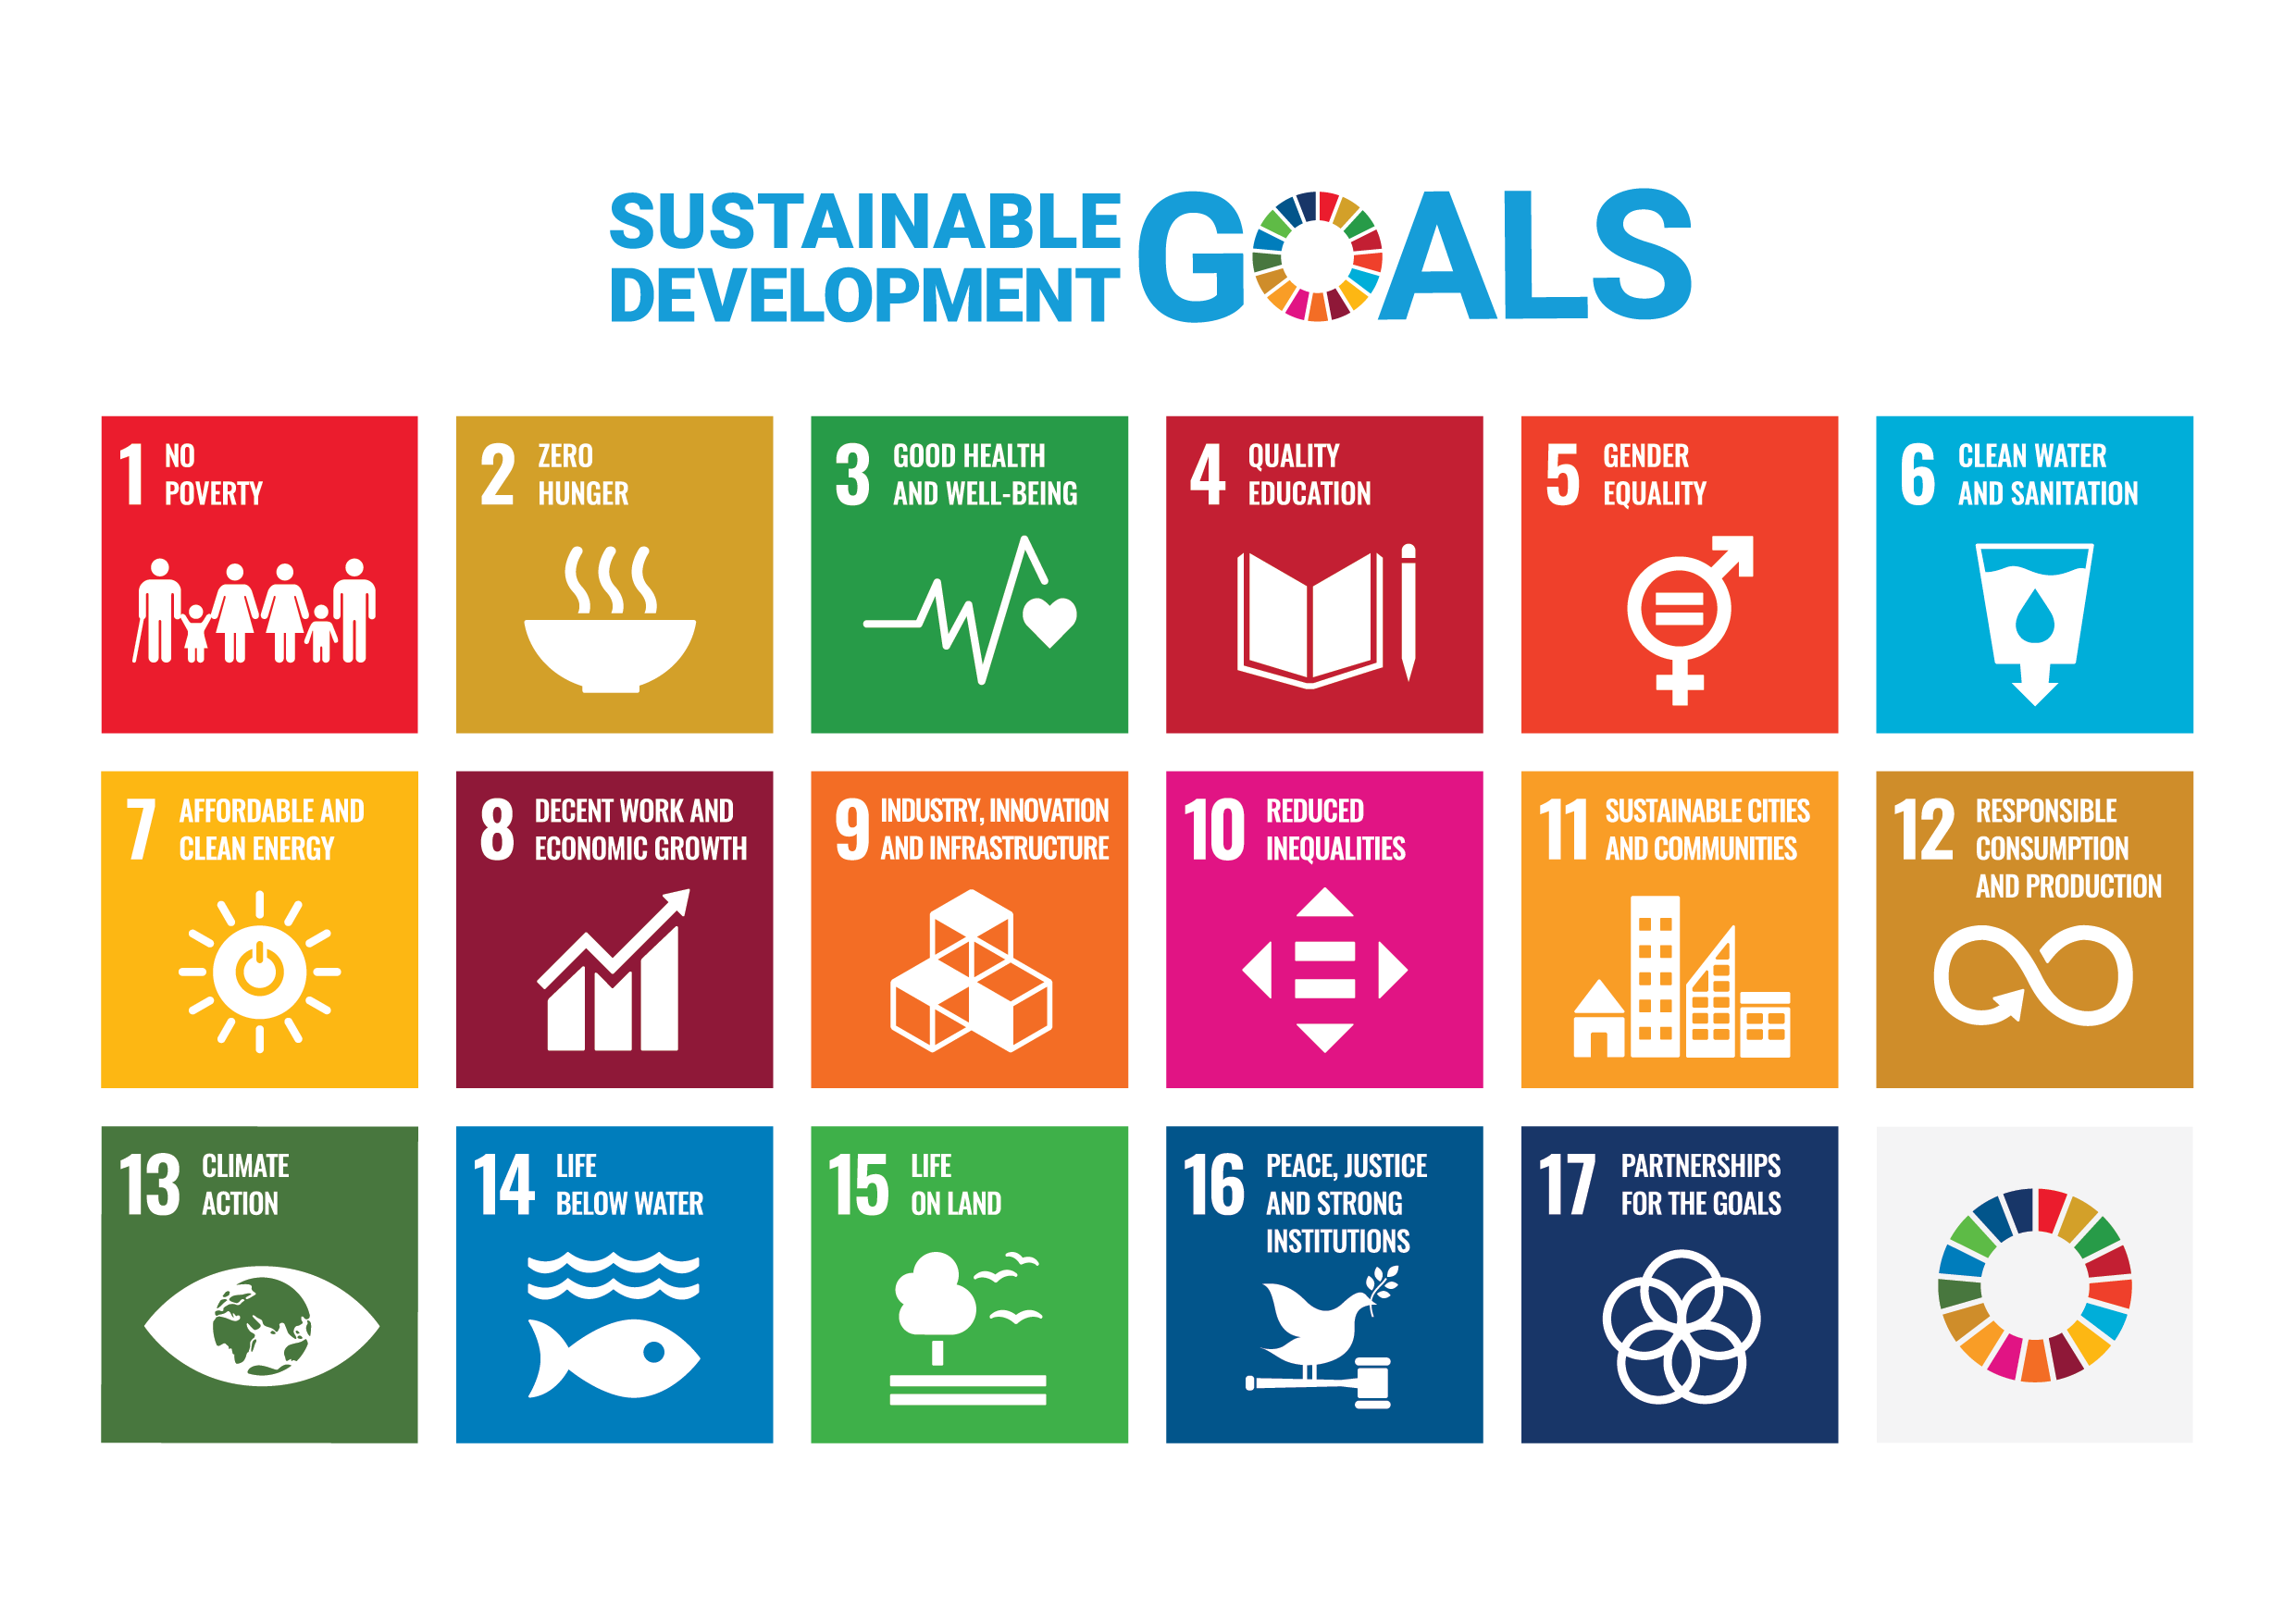 A poster showing the 17 Sustainable Development Goals.